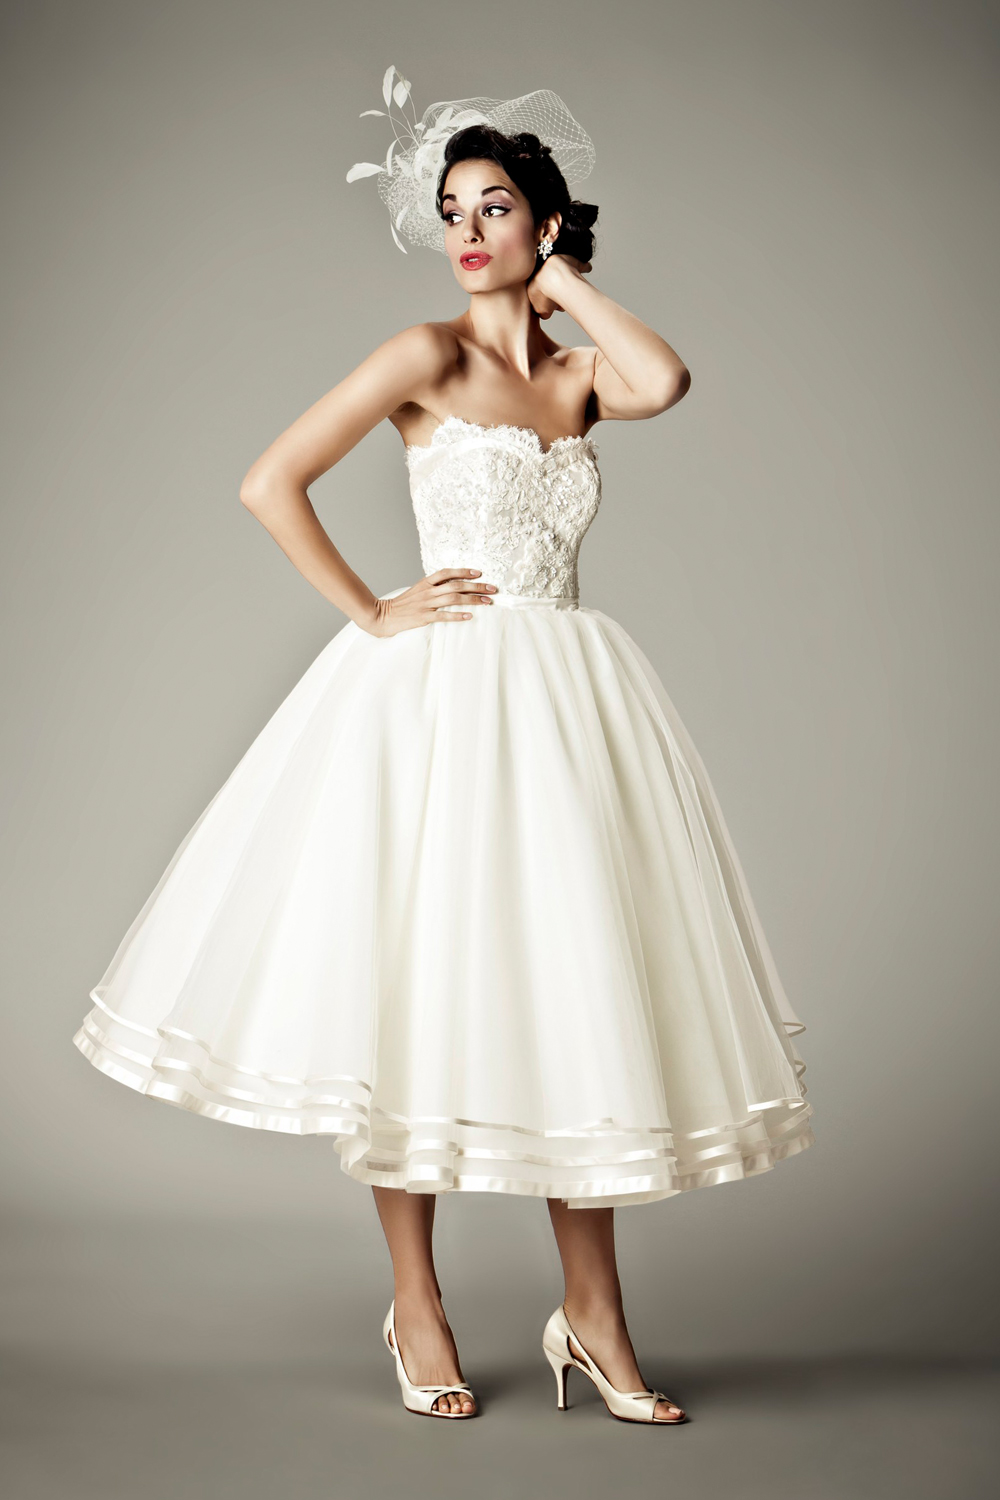 GoS: Bridal trends 2012 - Vintage inspired wedding dresses